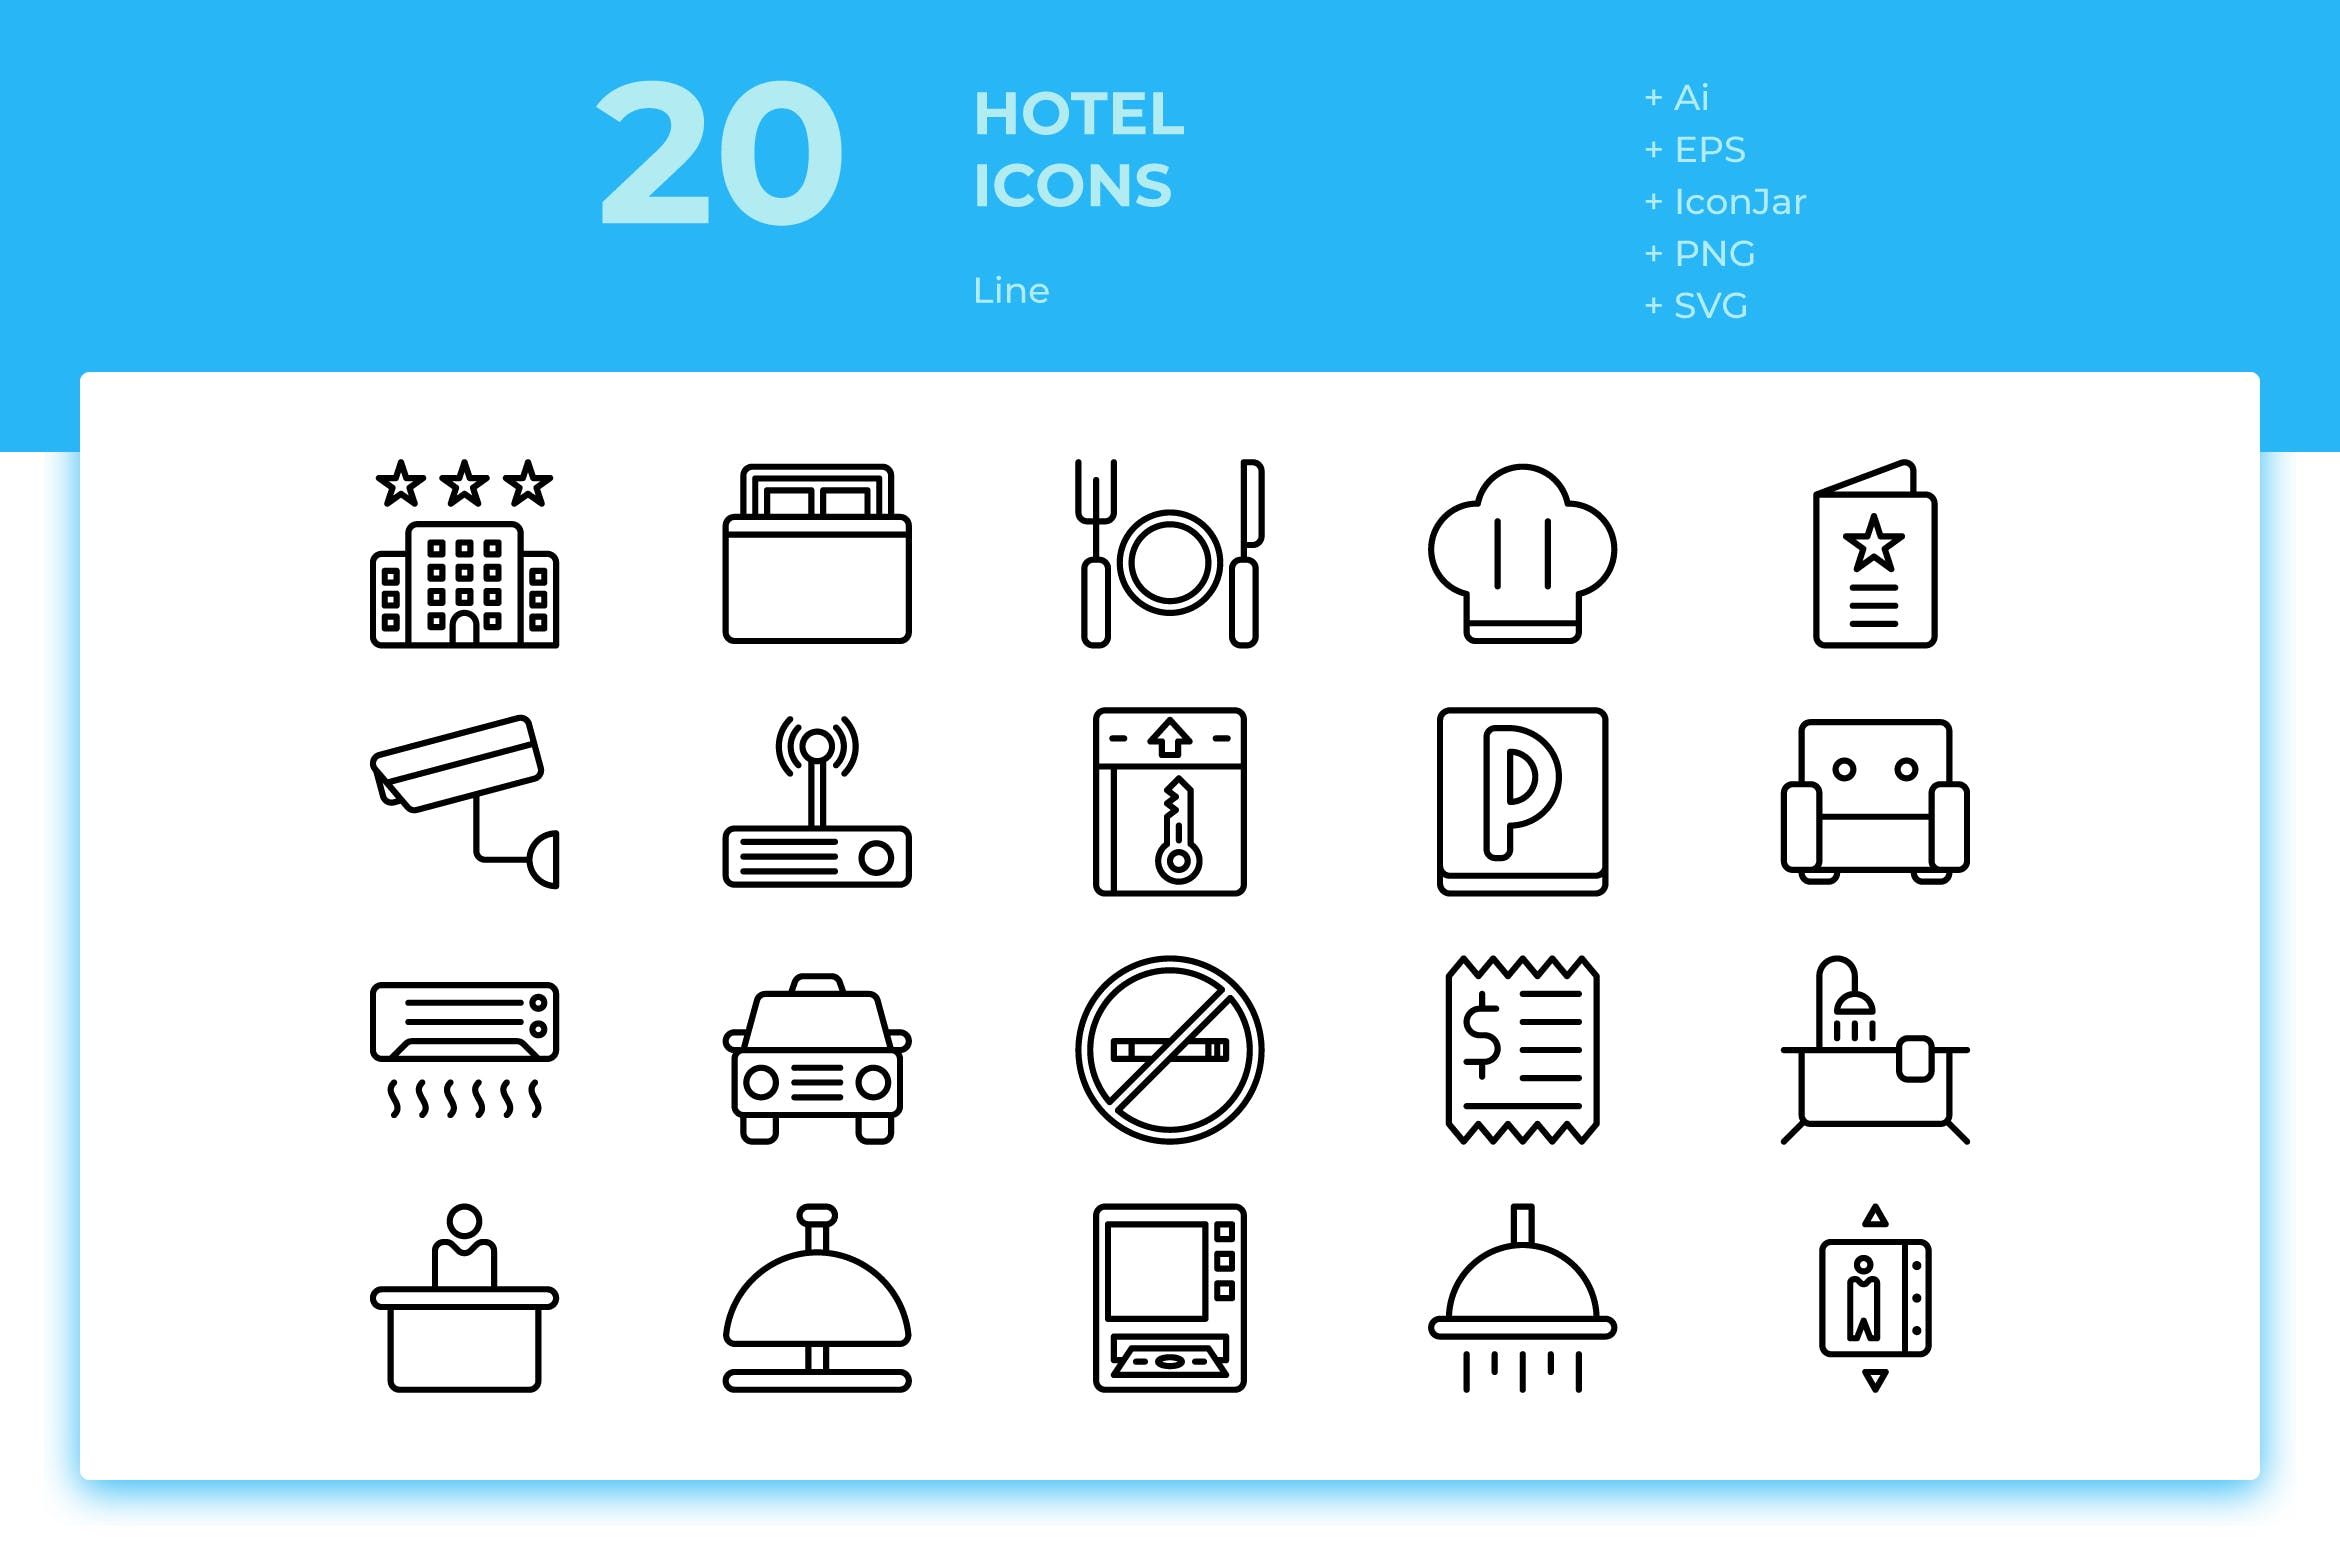 20 Hotel Icons (Line) by inipagi on di 2020